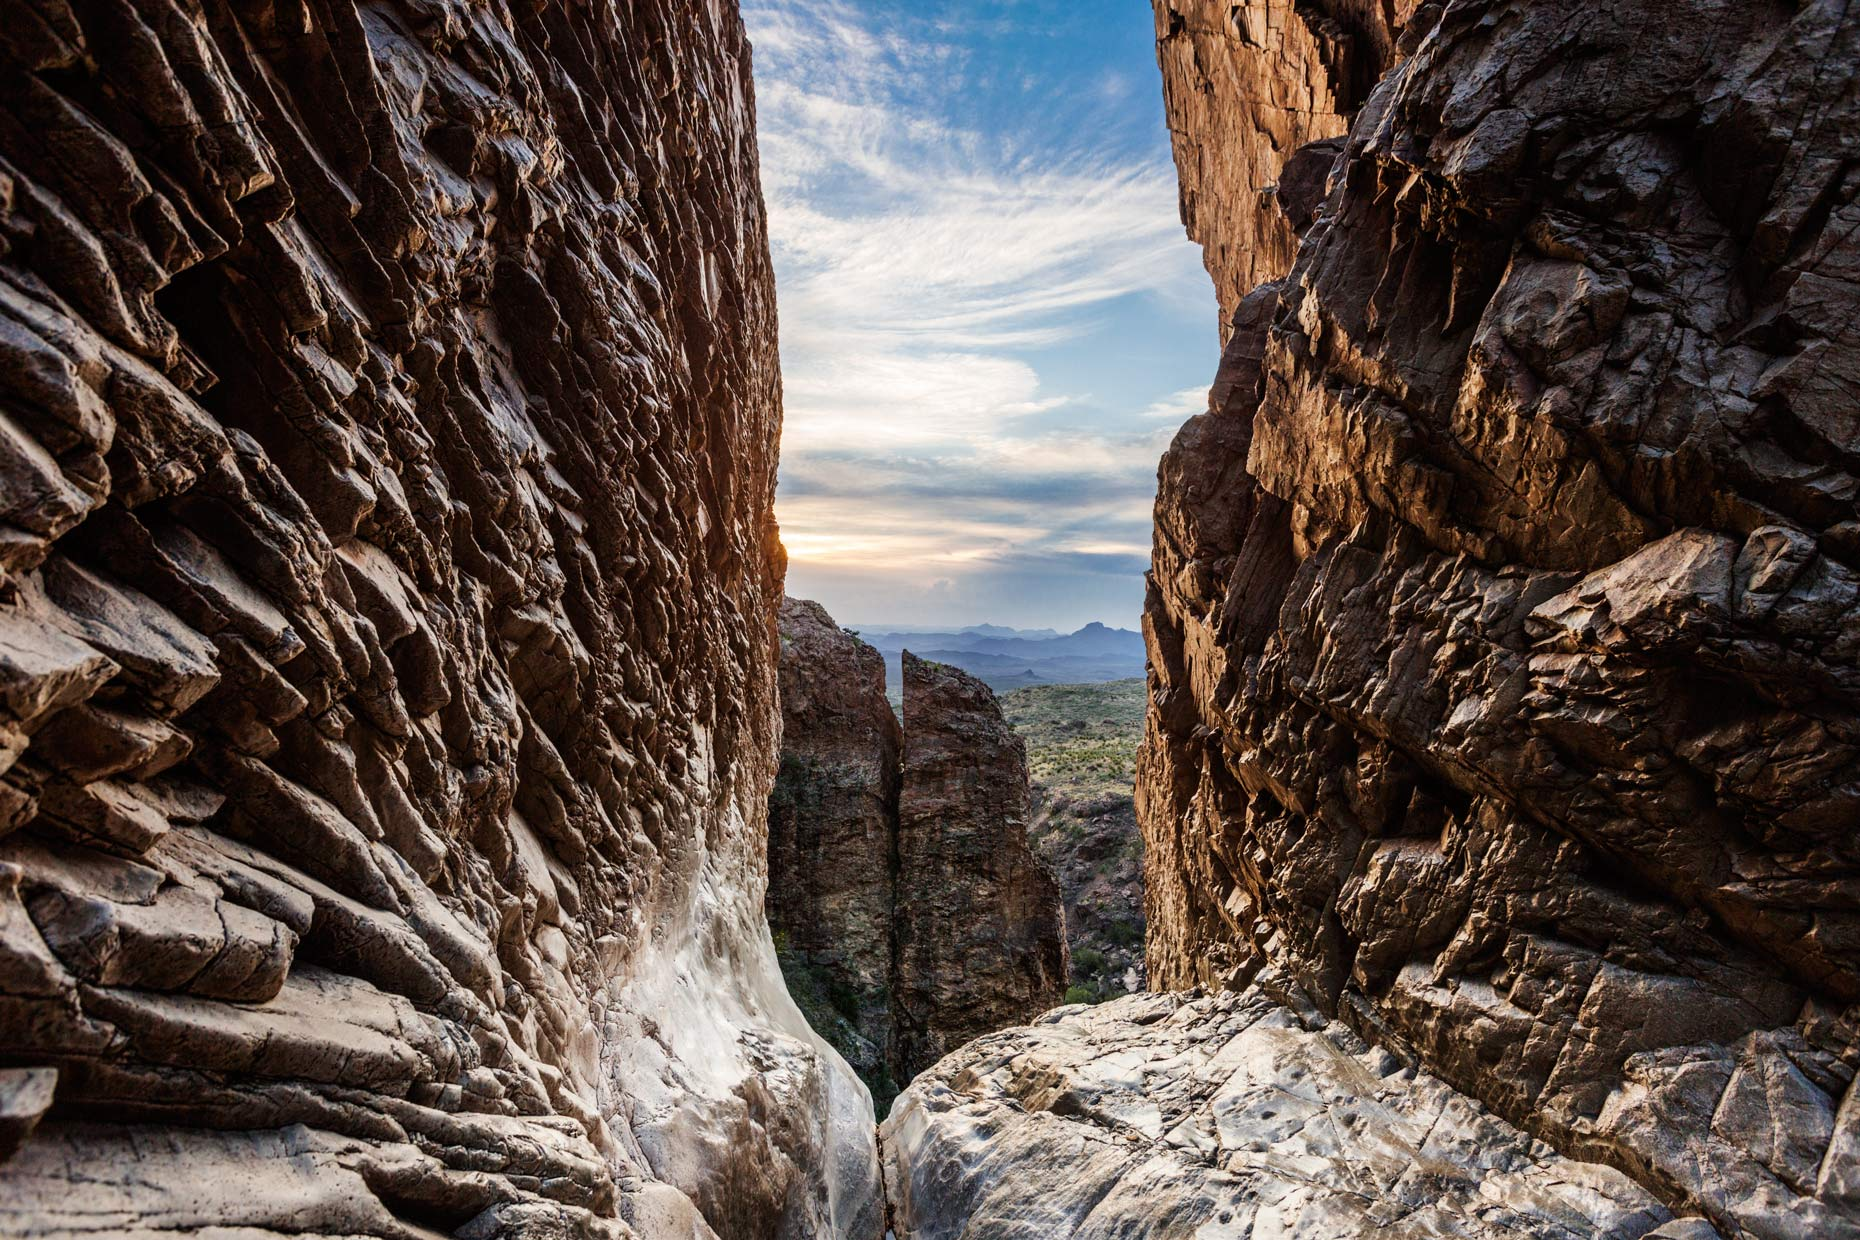 THE WINDOW, BIG BEND